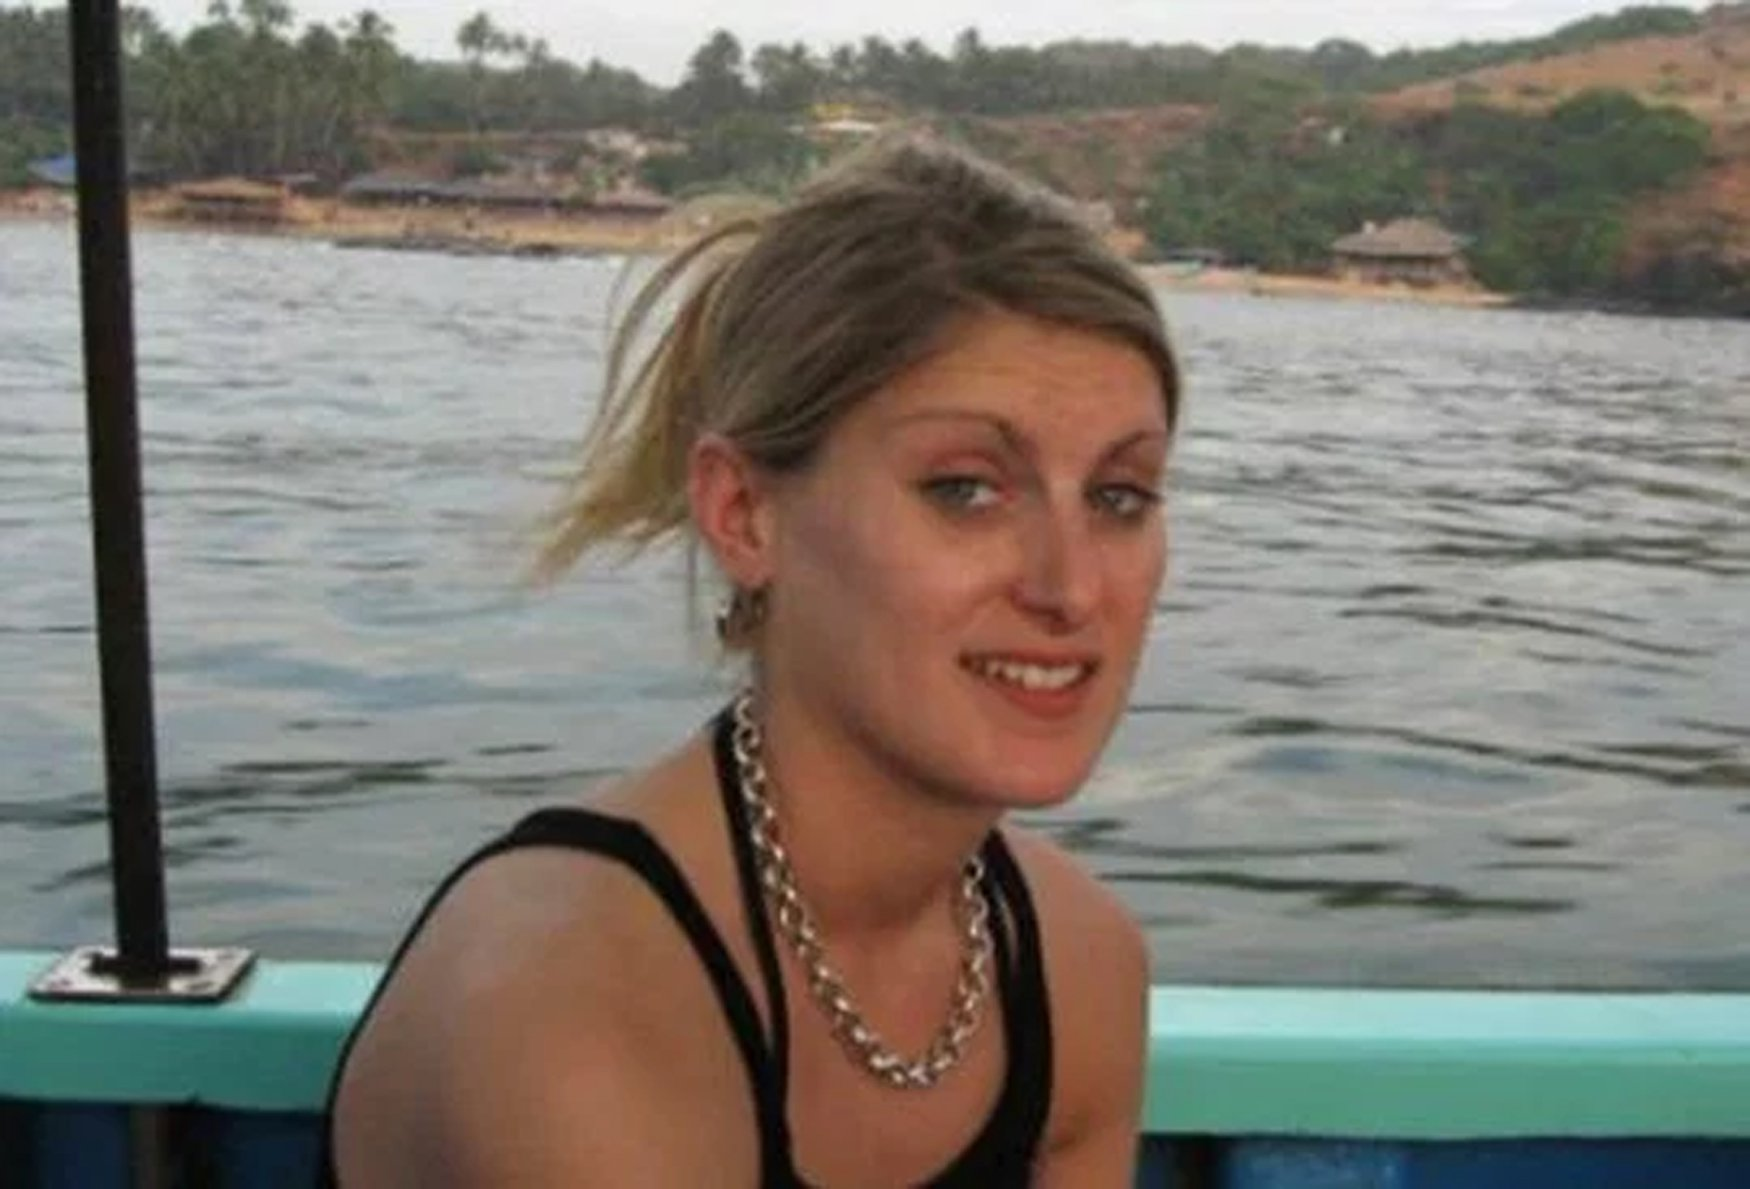 INS News Agency Ltd. 22/01/2019 *************** Picture by INS News Desk *************** British stewardess Rebecca Boyle who had just started work on a ?6 million yacht La Polonia moored in the Italian Riveria died after falling down steep steps in her bedroom, an inquest in Reading, Berks., heard today (Tue). The captain of the 150ft yacht that can accommodate 10 guests as well the crew of seven people ? and costs ?150,000 a week to charter - said he had warned Ms Boyle about reigning in the 32-year-old's heavy drinking after seeing her with red eyes and clearly hungover. But on July 3 2018, the night of England's dramatic World Cup victory over Colombia during a penalty shoot-out, Ms Boyle was seen drinking straight vodka with a friend on the Quay in the port of Imperia before she was escorted back to her accommodation. She was found dead the next day after a colleague heard her alarm going off and went to wake her. Berkshire Coroner ruled her death was accidental. See copy INSyacht